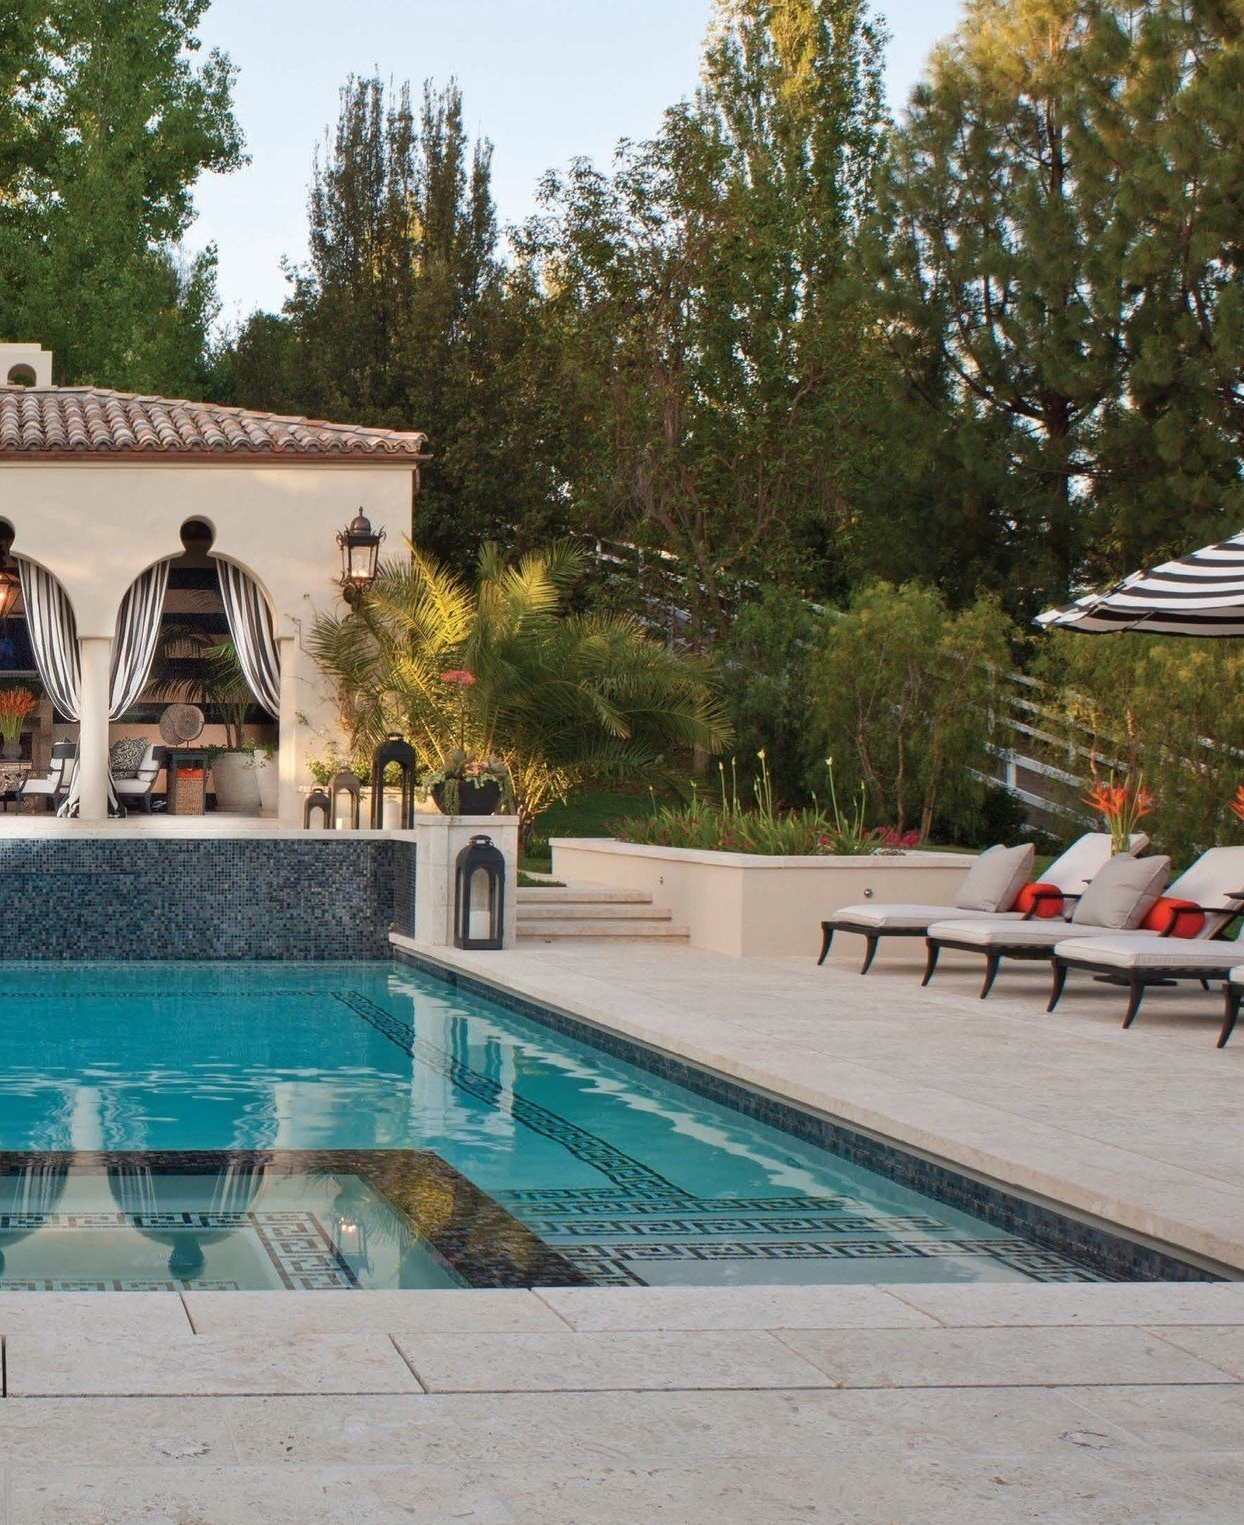 Widely Used Outdoor Pool Lanterns Intended For Outdoor Striped Drapes, Exterior Curtains, Greek Key Design In Pool (View 6 of 20)